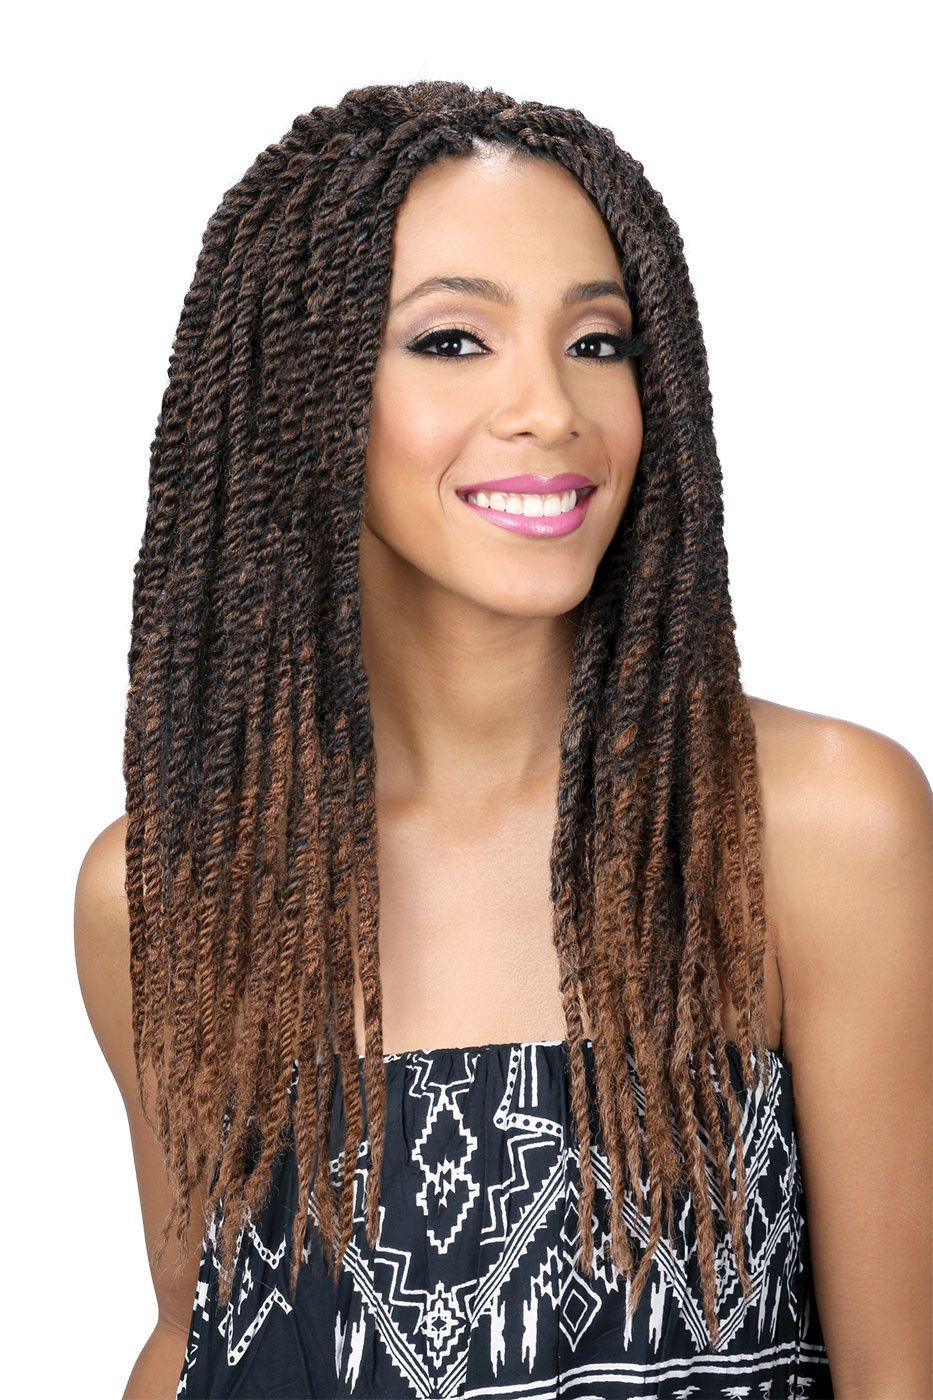 Bobbi Boss Jamaica Rasta Braid Up To 40 Hair Styles French Braid Hairstyles Rasta Hair